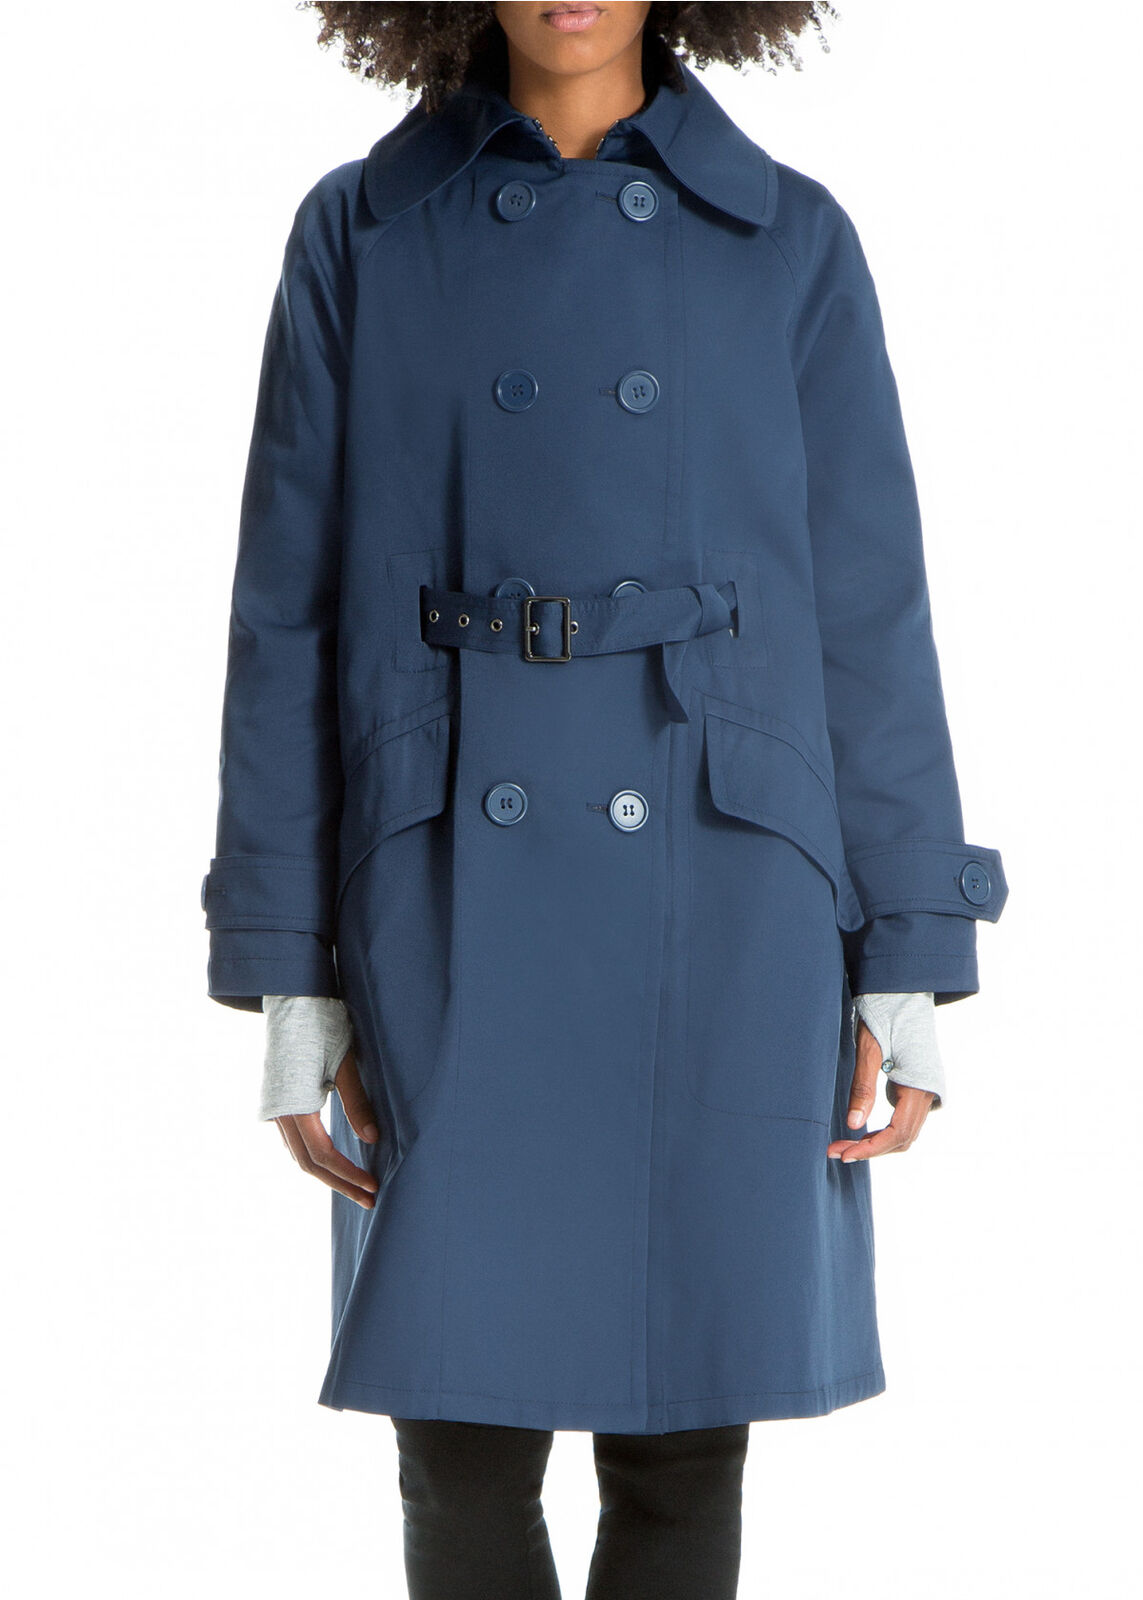 Max Studio Women's bluee Front-Belted Trench Coat, Size M NWOT